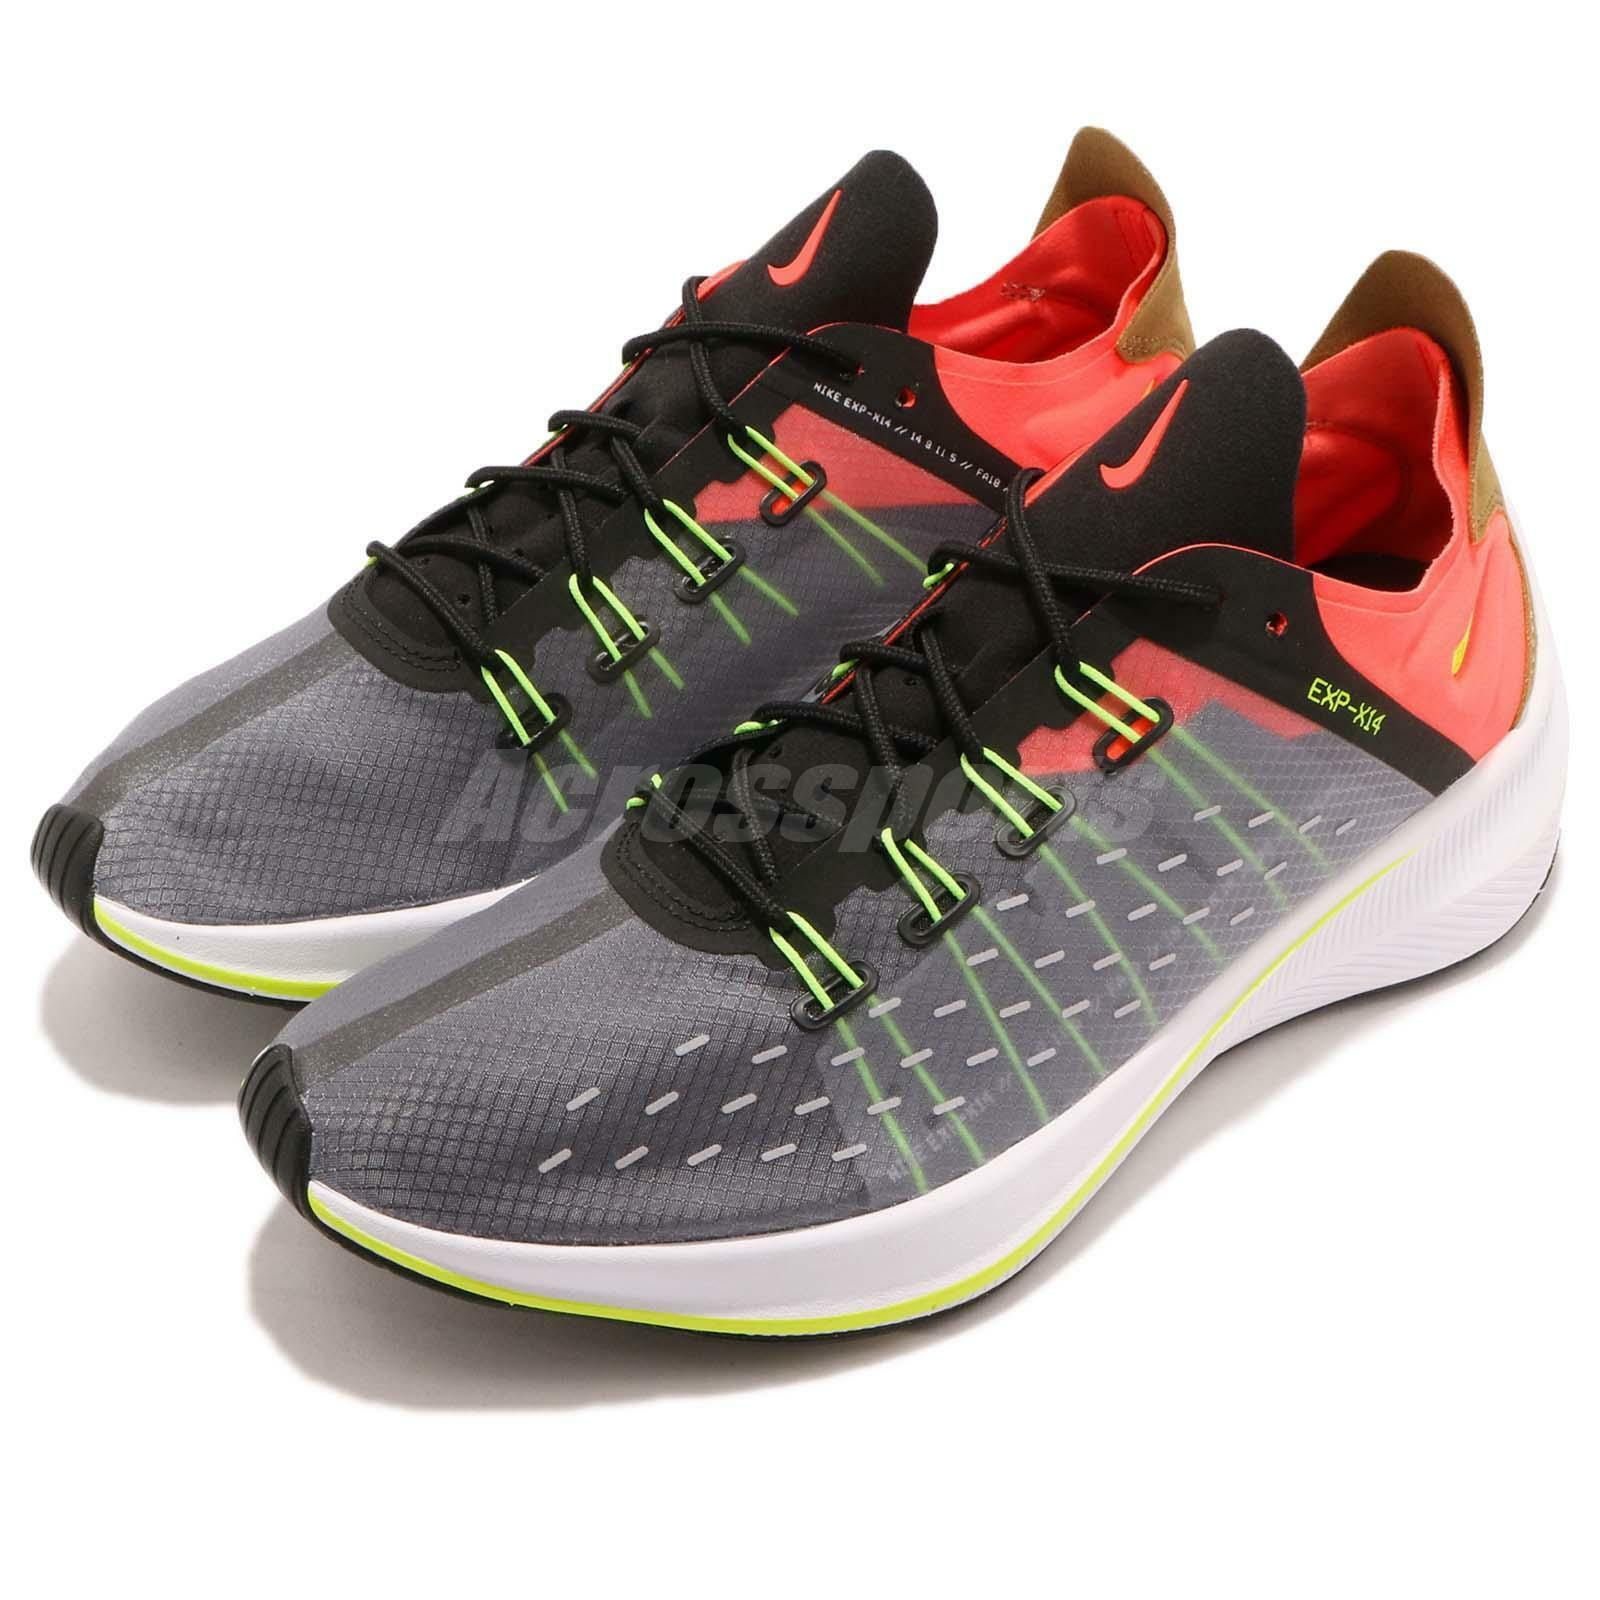 Nike EXP-X14 Total Crimson Black Volt REACT Mens Running shoes AO1554-001